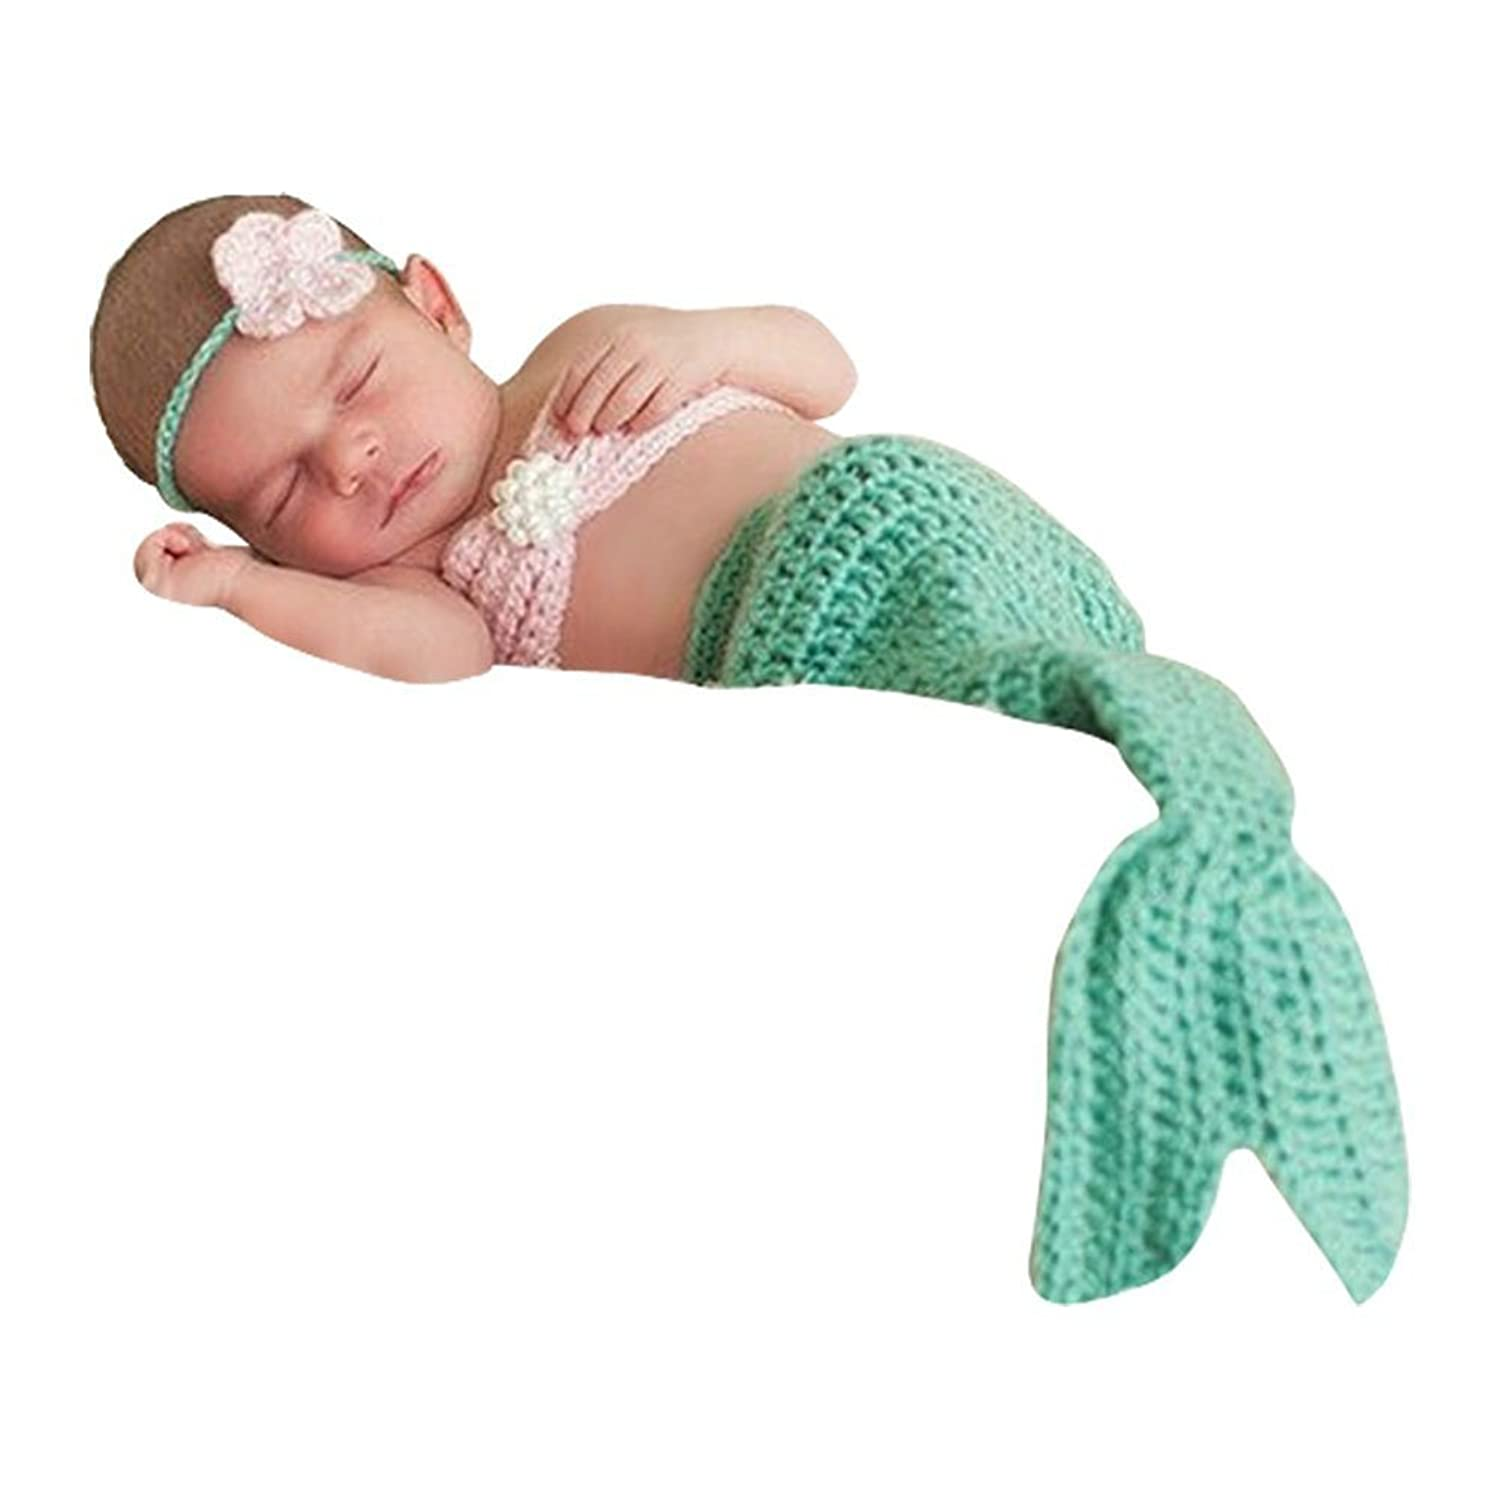 CX-Queen Baby Photography Prop Crochet Knit Hairband Bra Tail Green Mermaid